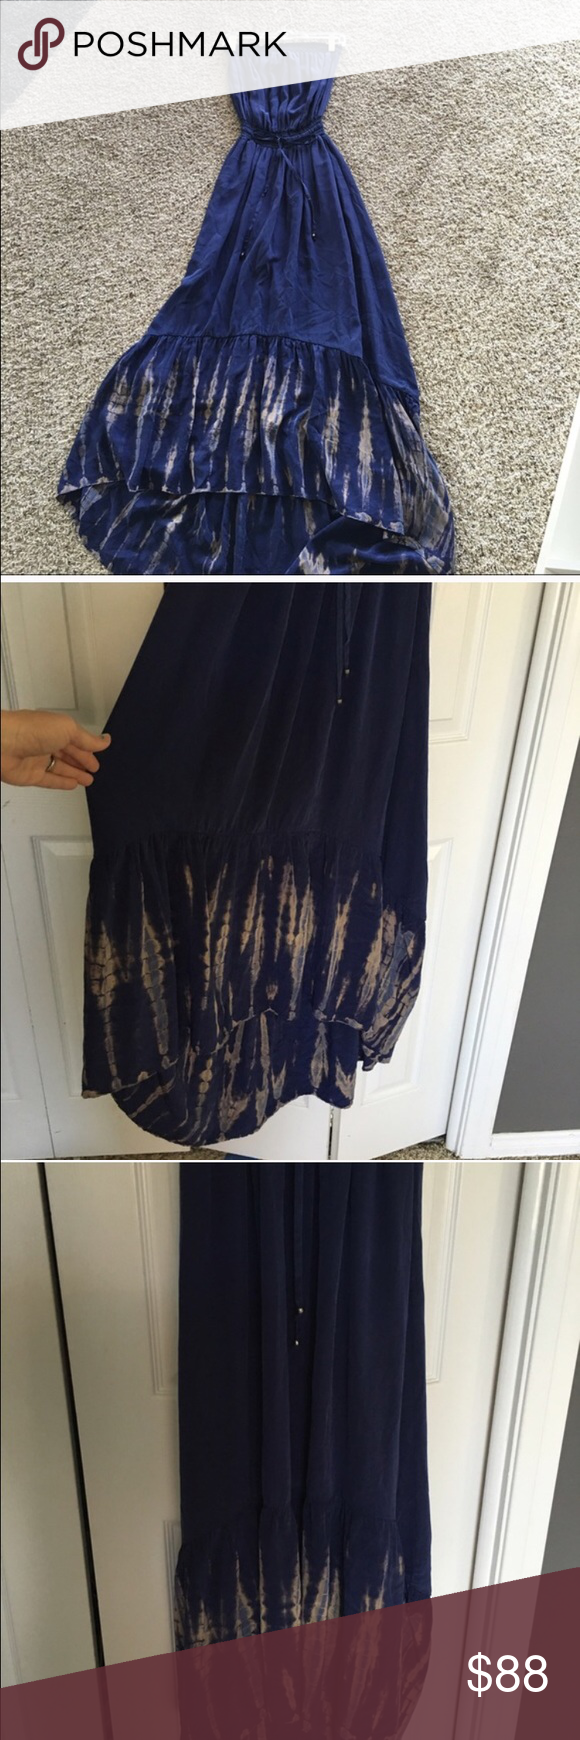 Gypsy 05 Silk halter dress like new Gorgeous dress fits amazing looks like new nothing wrong with this dress it is truly gorgeous Free People Dresses Maxi